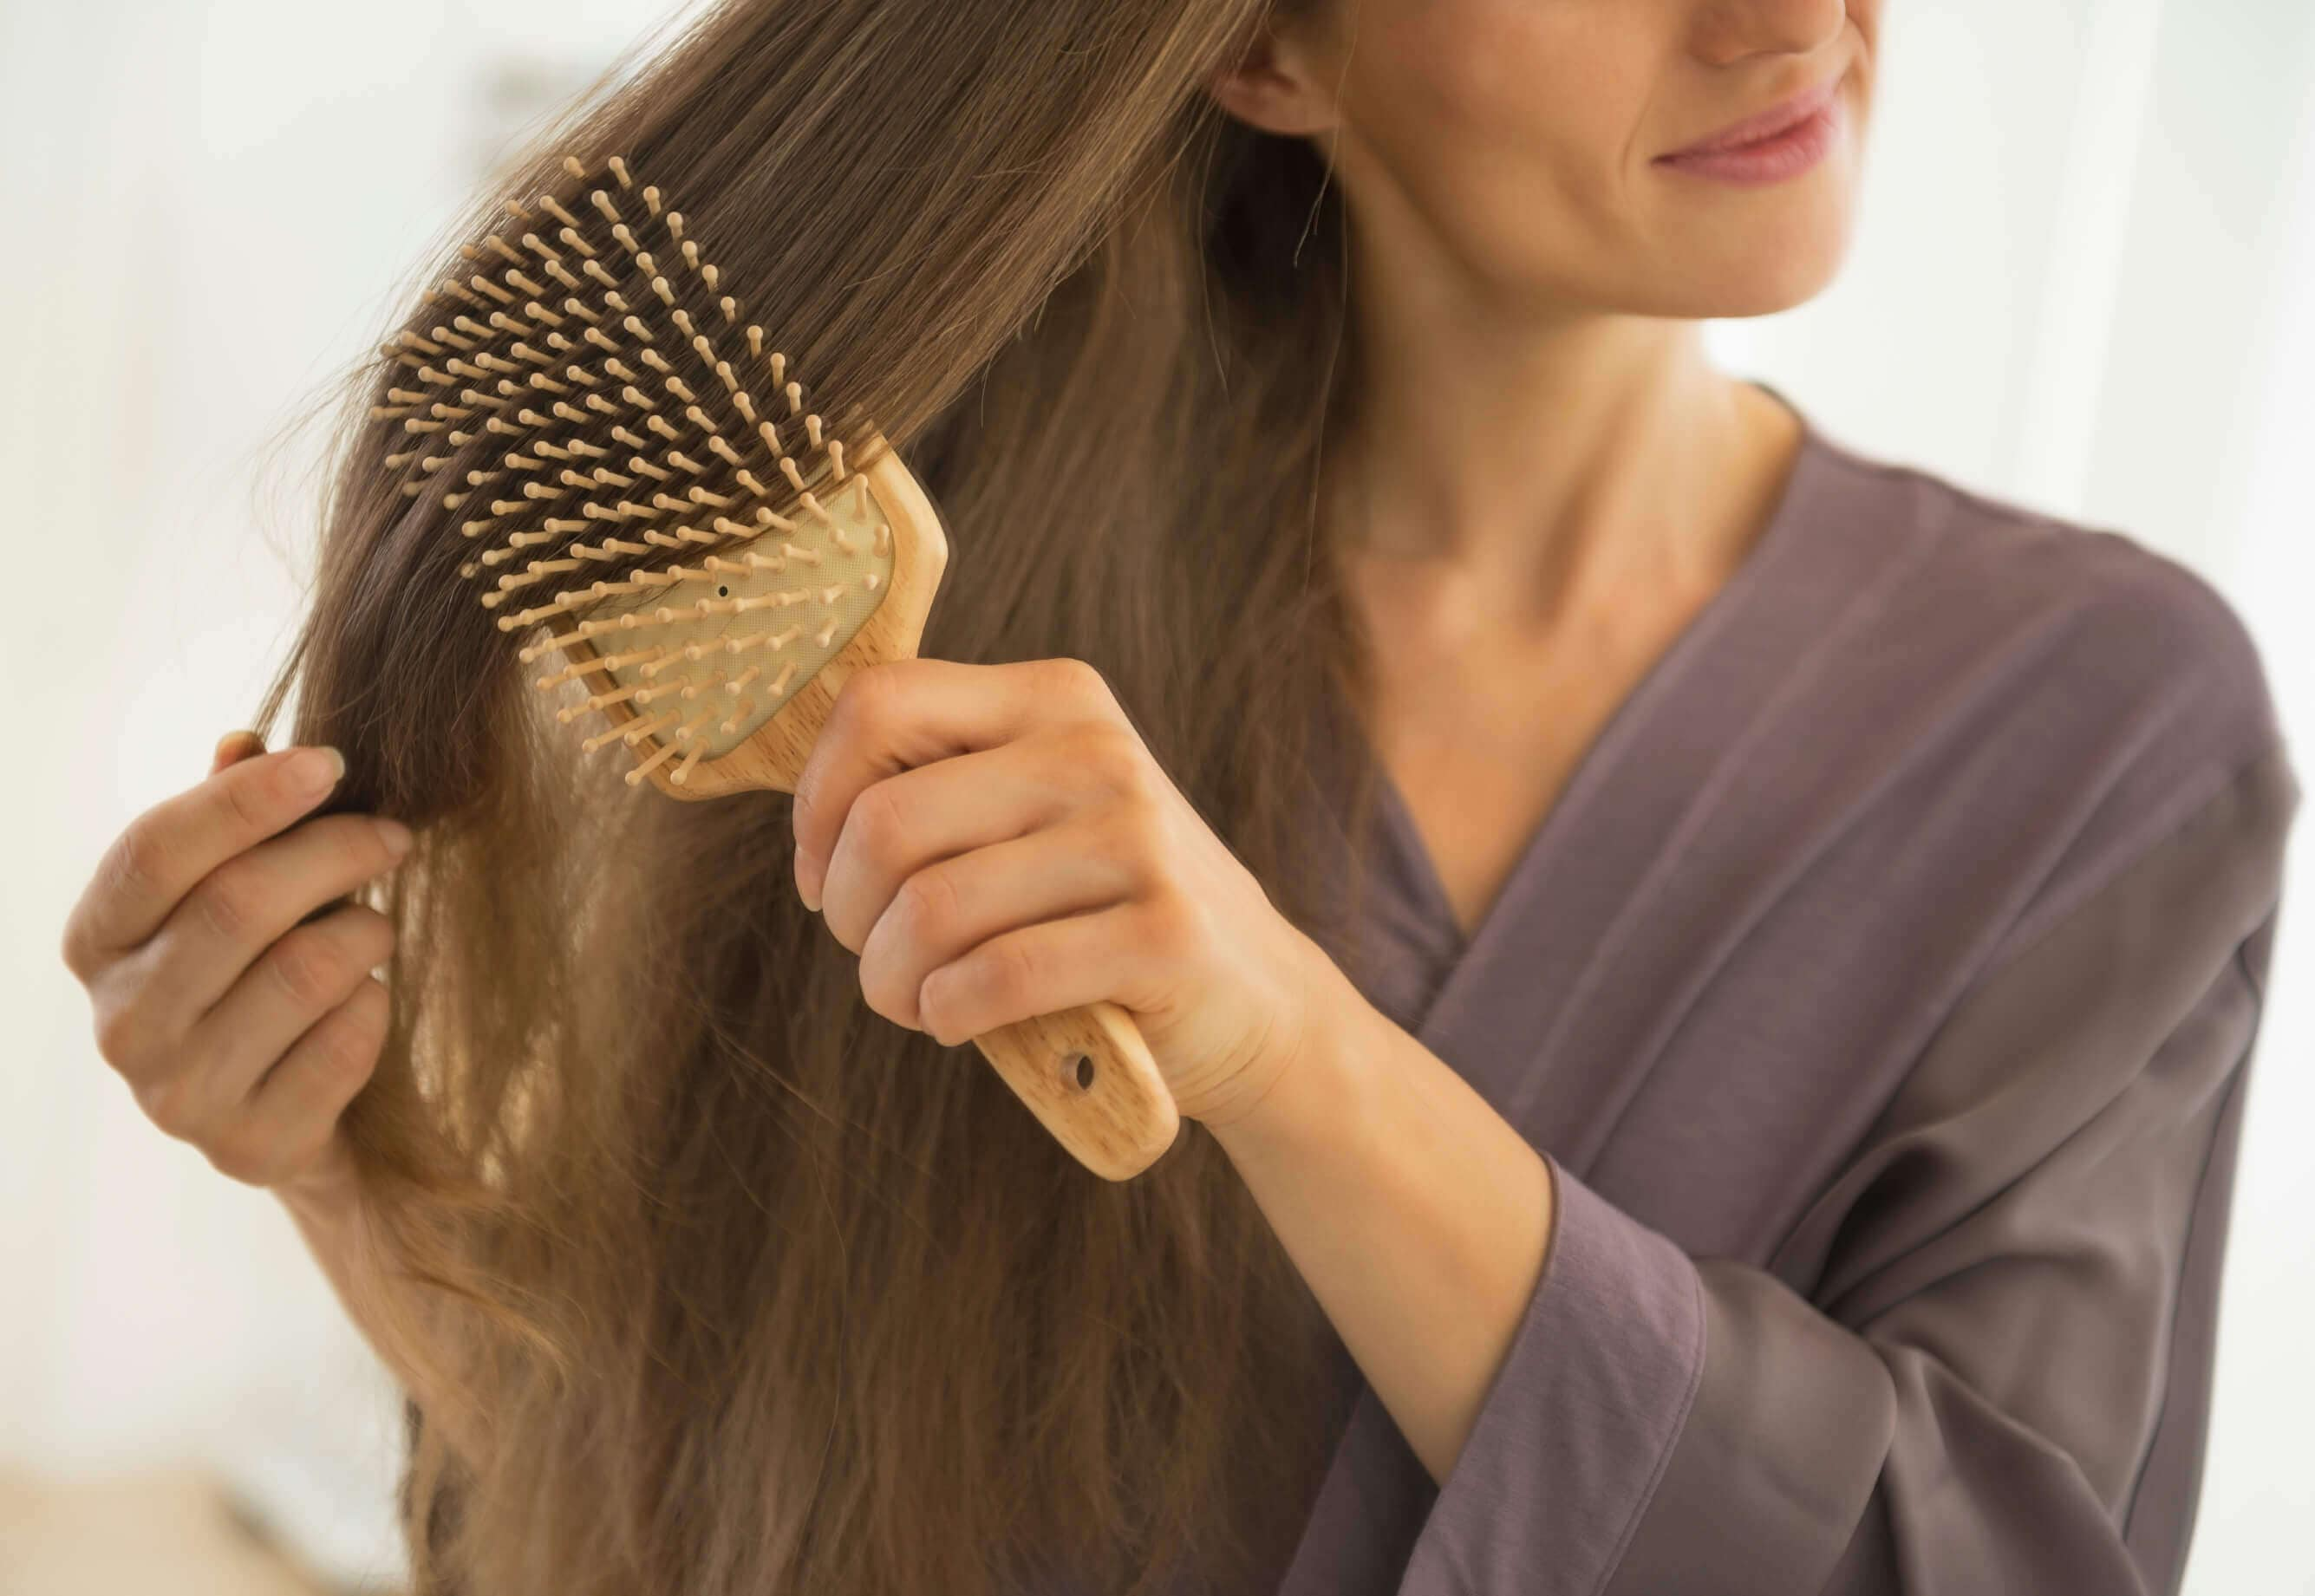 Woman brushing her hair with a brush